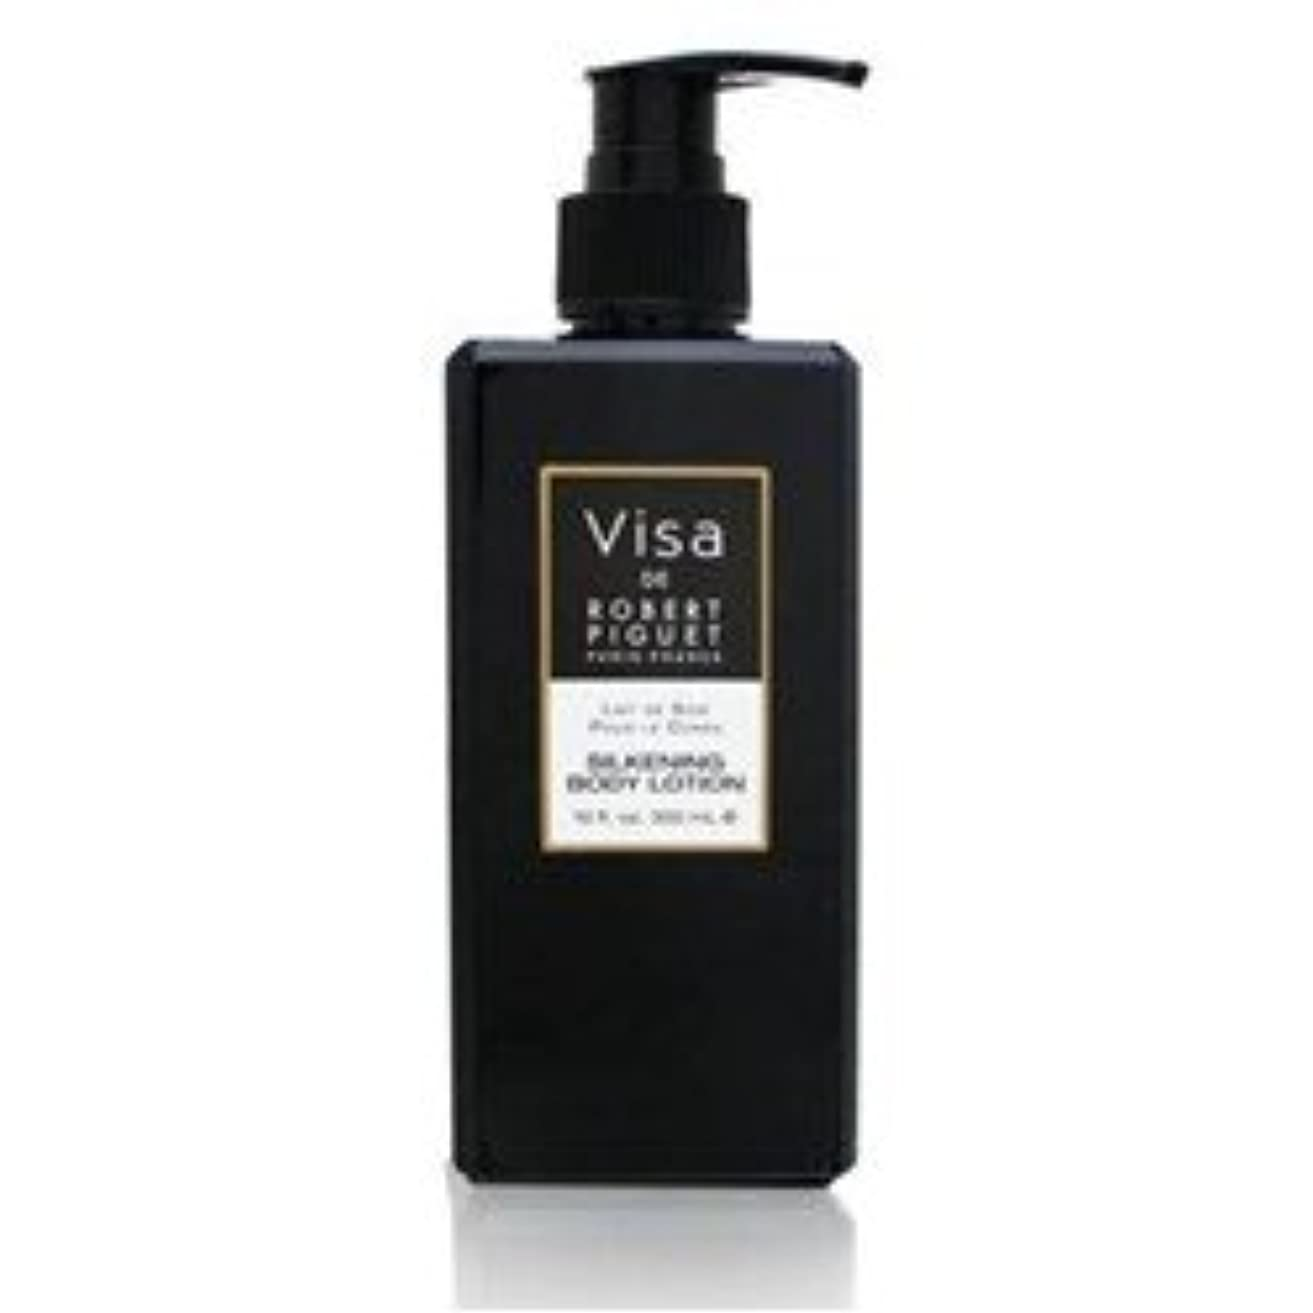 生線専門Visa (ビザ)10 oz (300ml) Body Lotion (ボディーローション) by Robert Piguet for Women